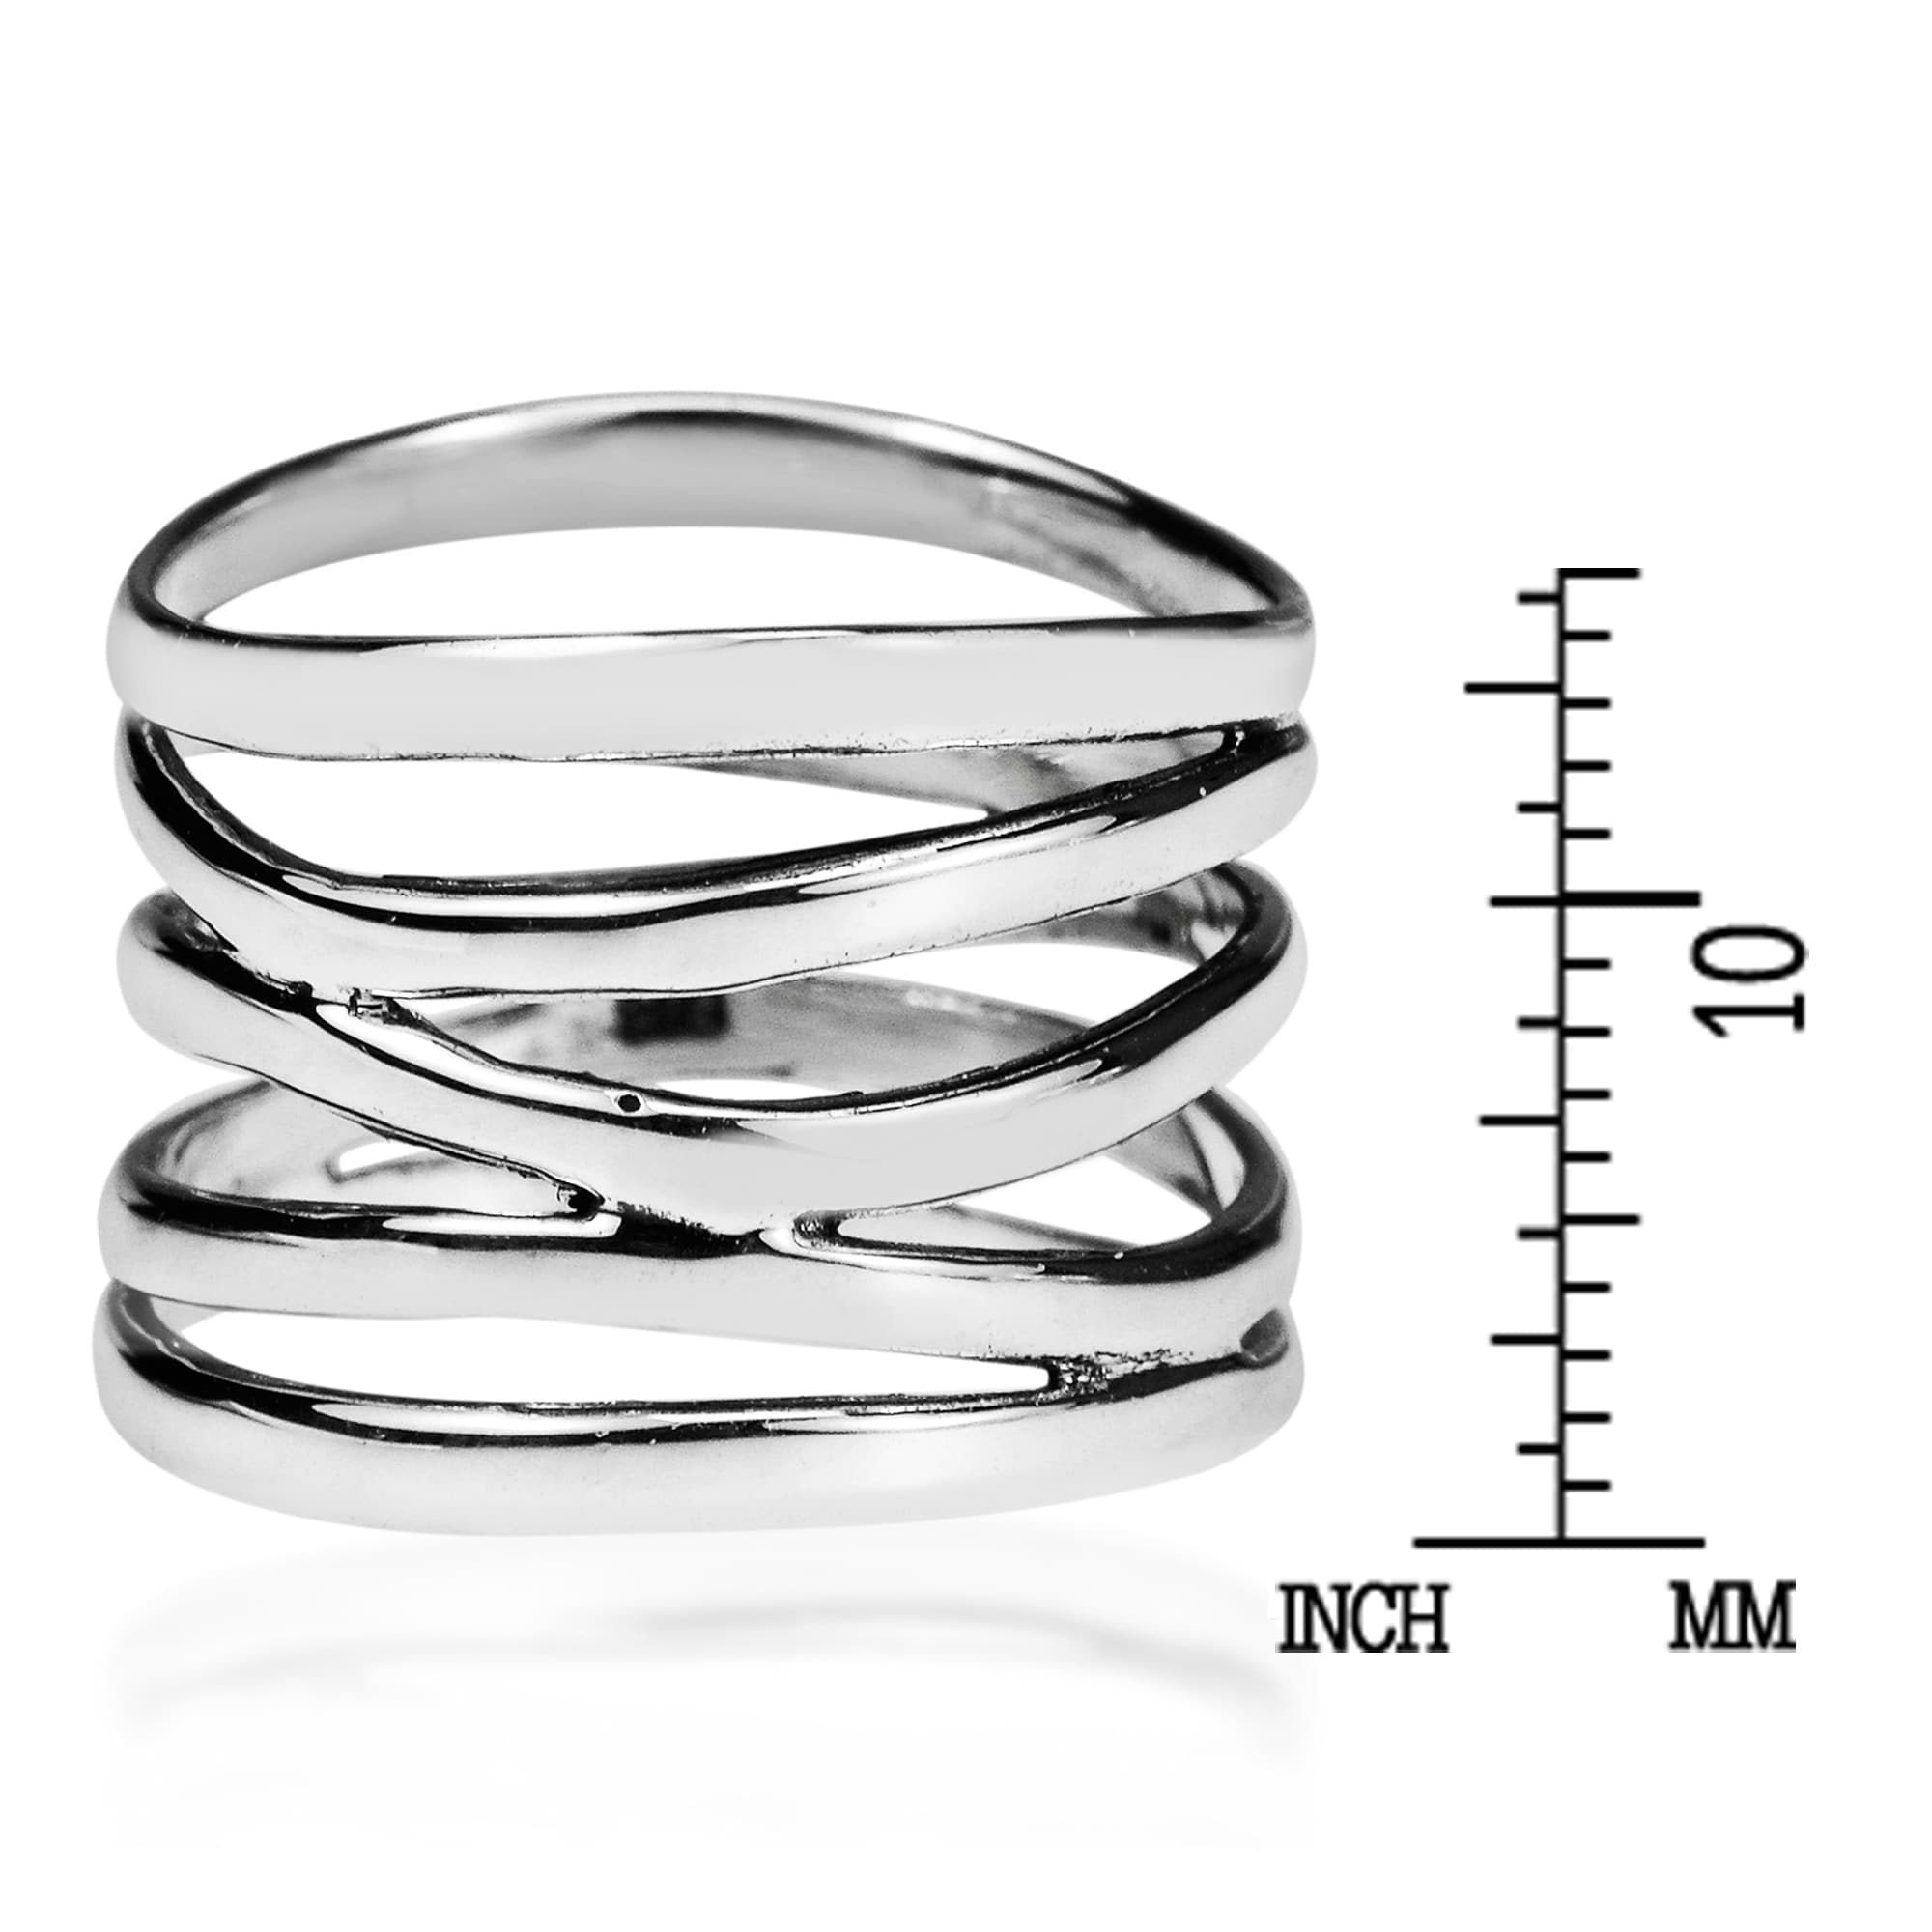 a0414aca7c6a7 Handmade Wide Five Band Coil Wrap Sterling Silver Ring (Thailand)